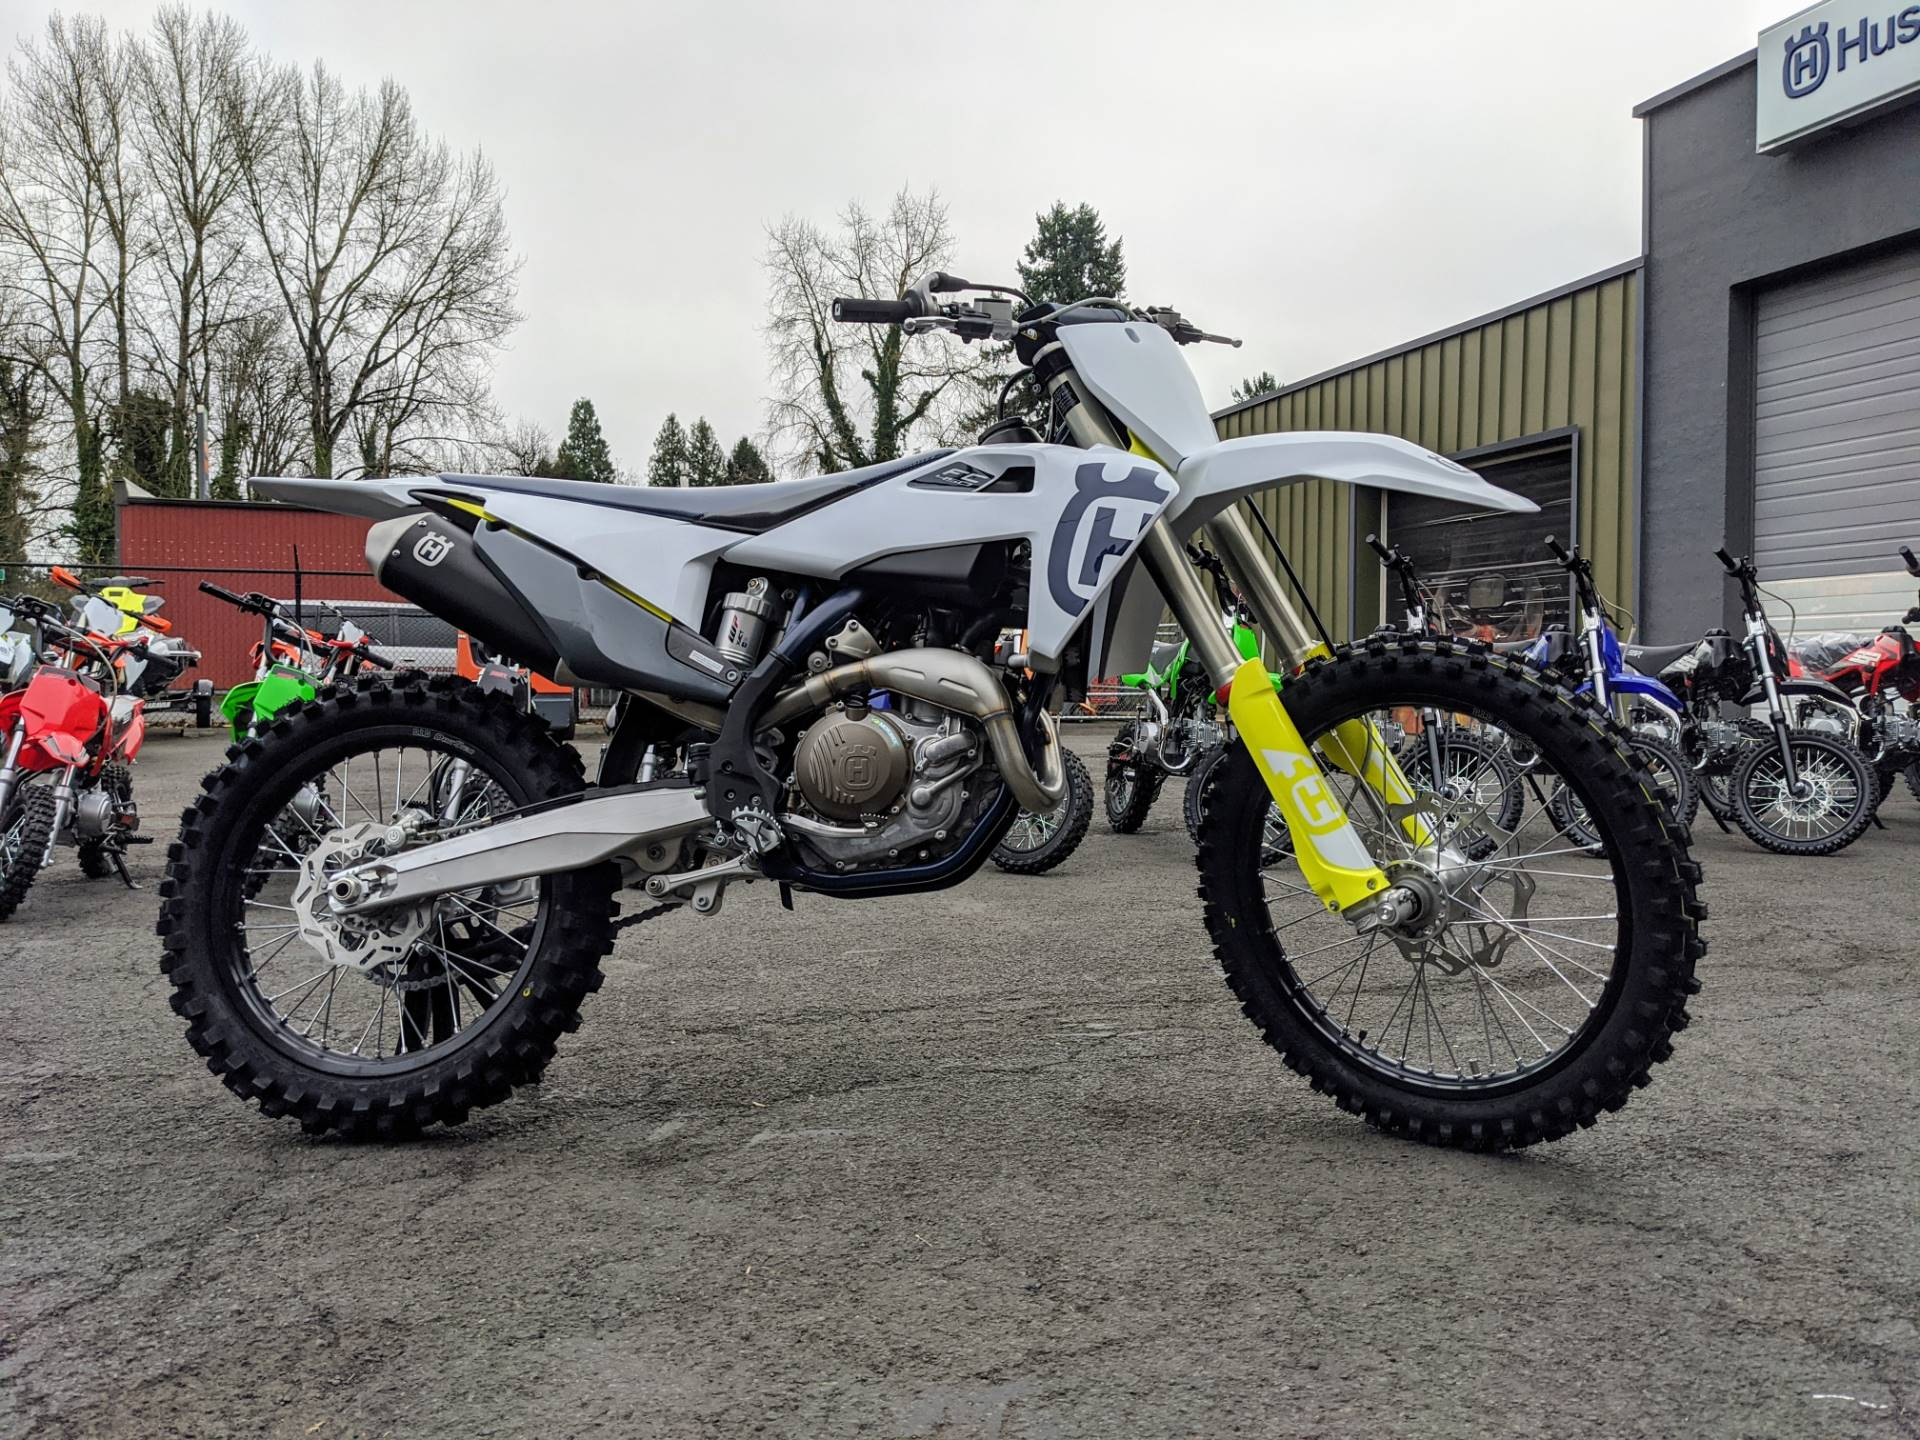 2020 Husqvarna FC 450 in Gresham, Oregon - Photo 2